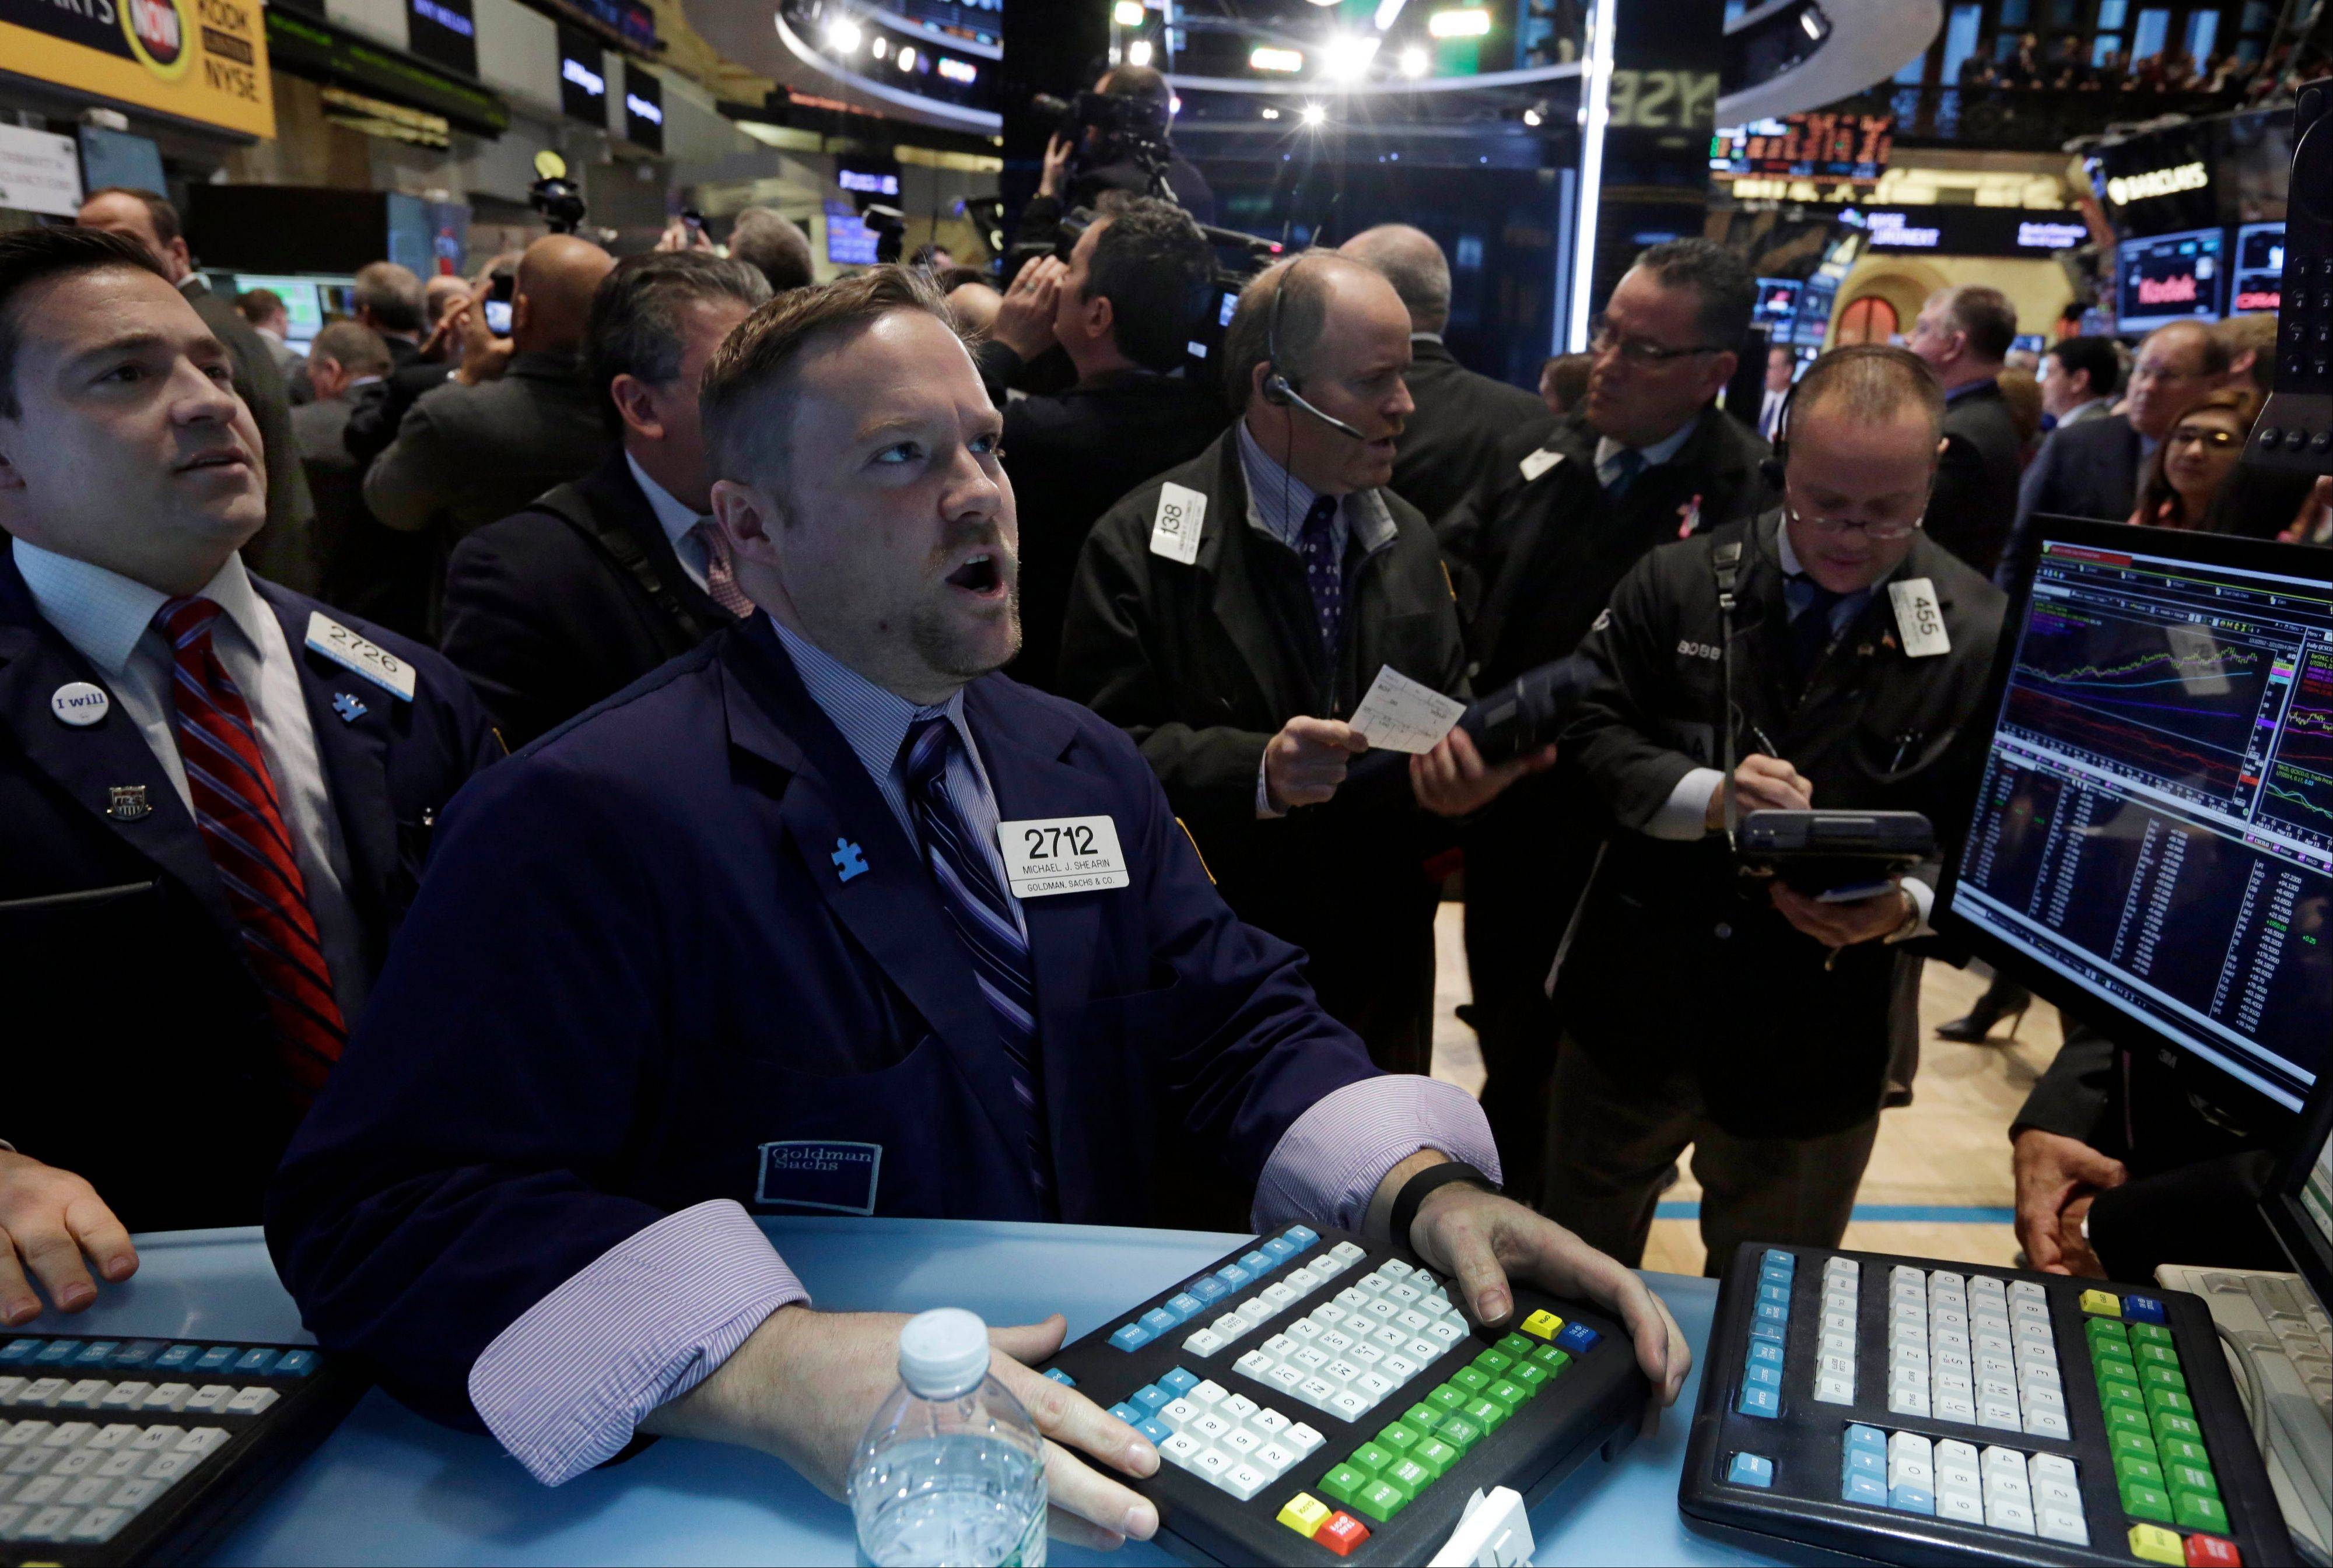 Stocks were little changed Thursday, as retailers slumped and investors awaited Friday�s jobs report for clues to whether the Federal Reserve will accelerate the pace of stimulus cuts.